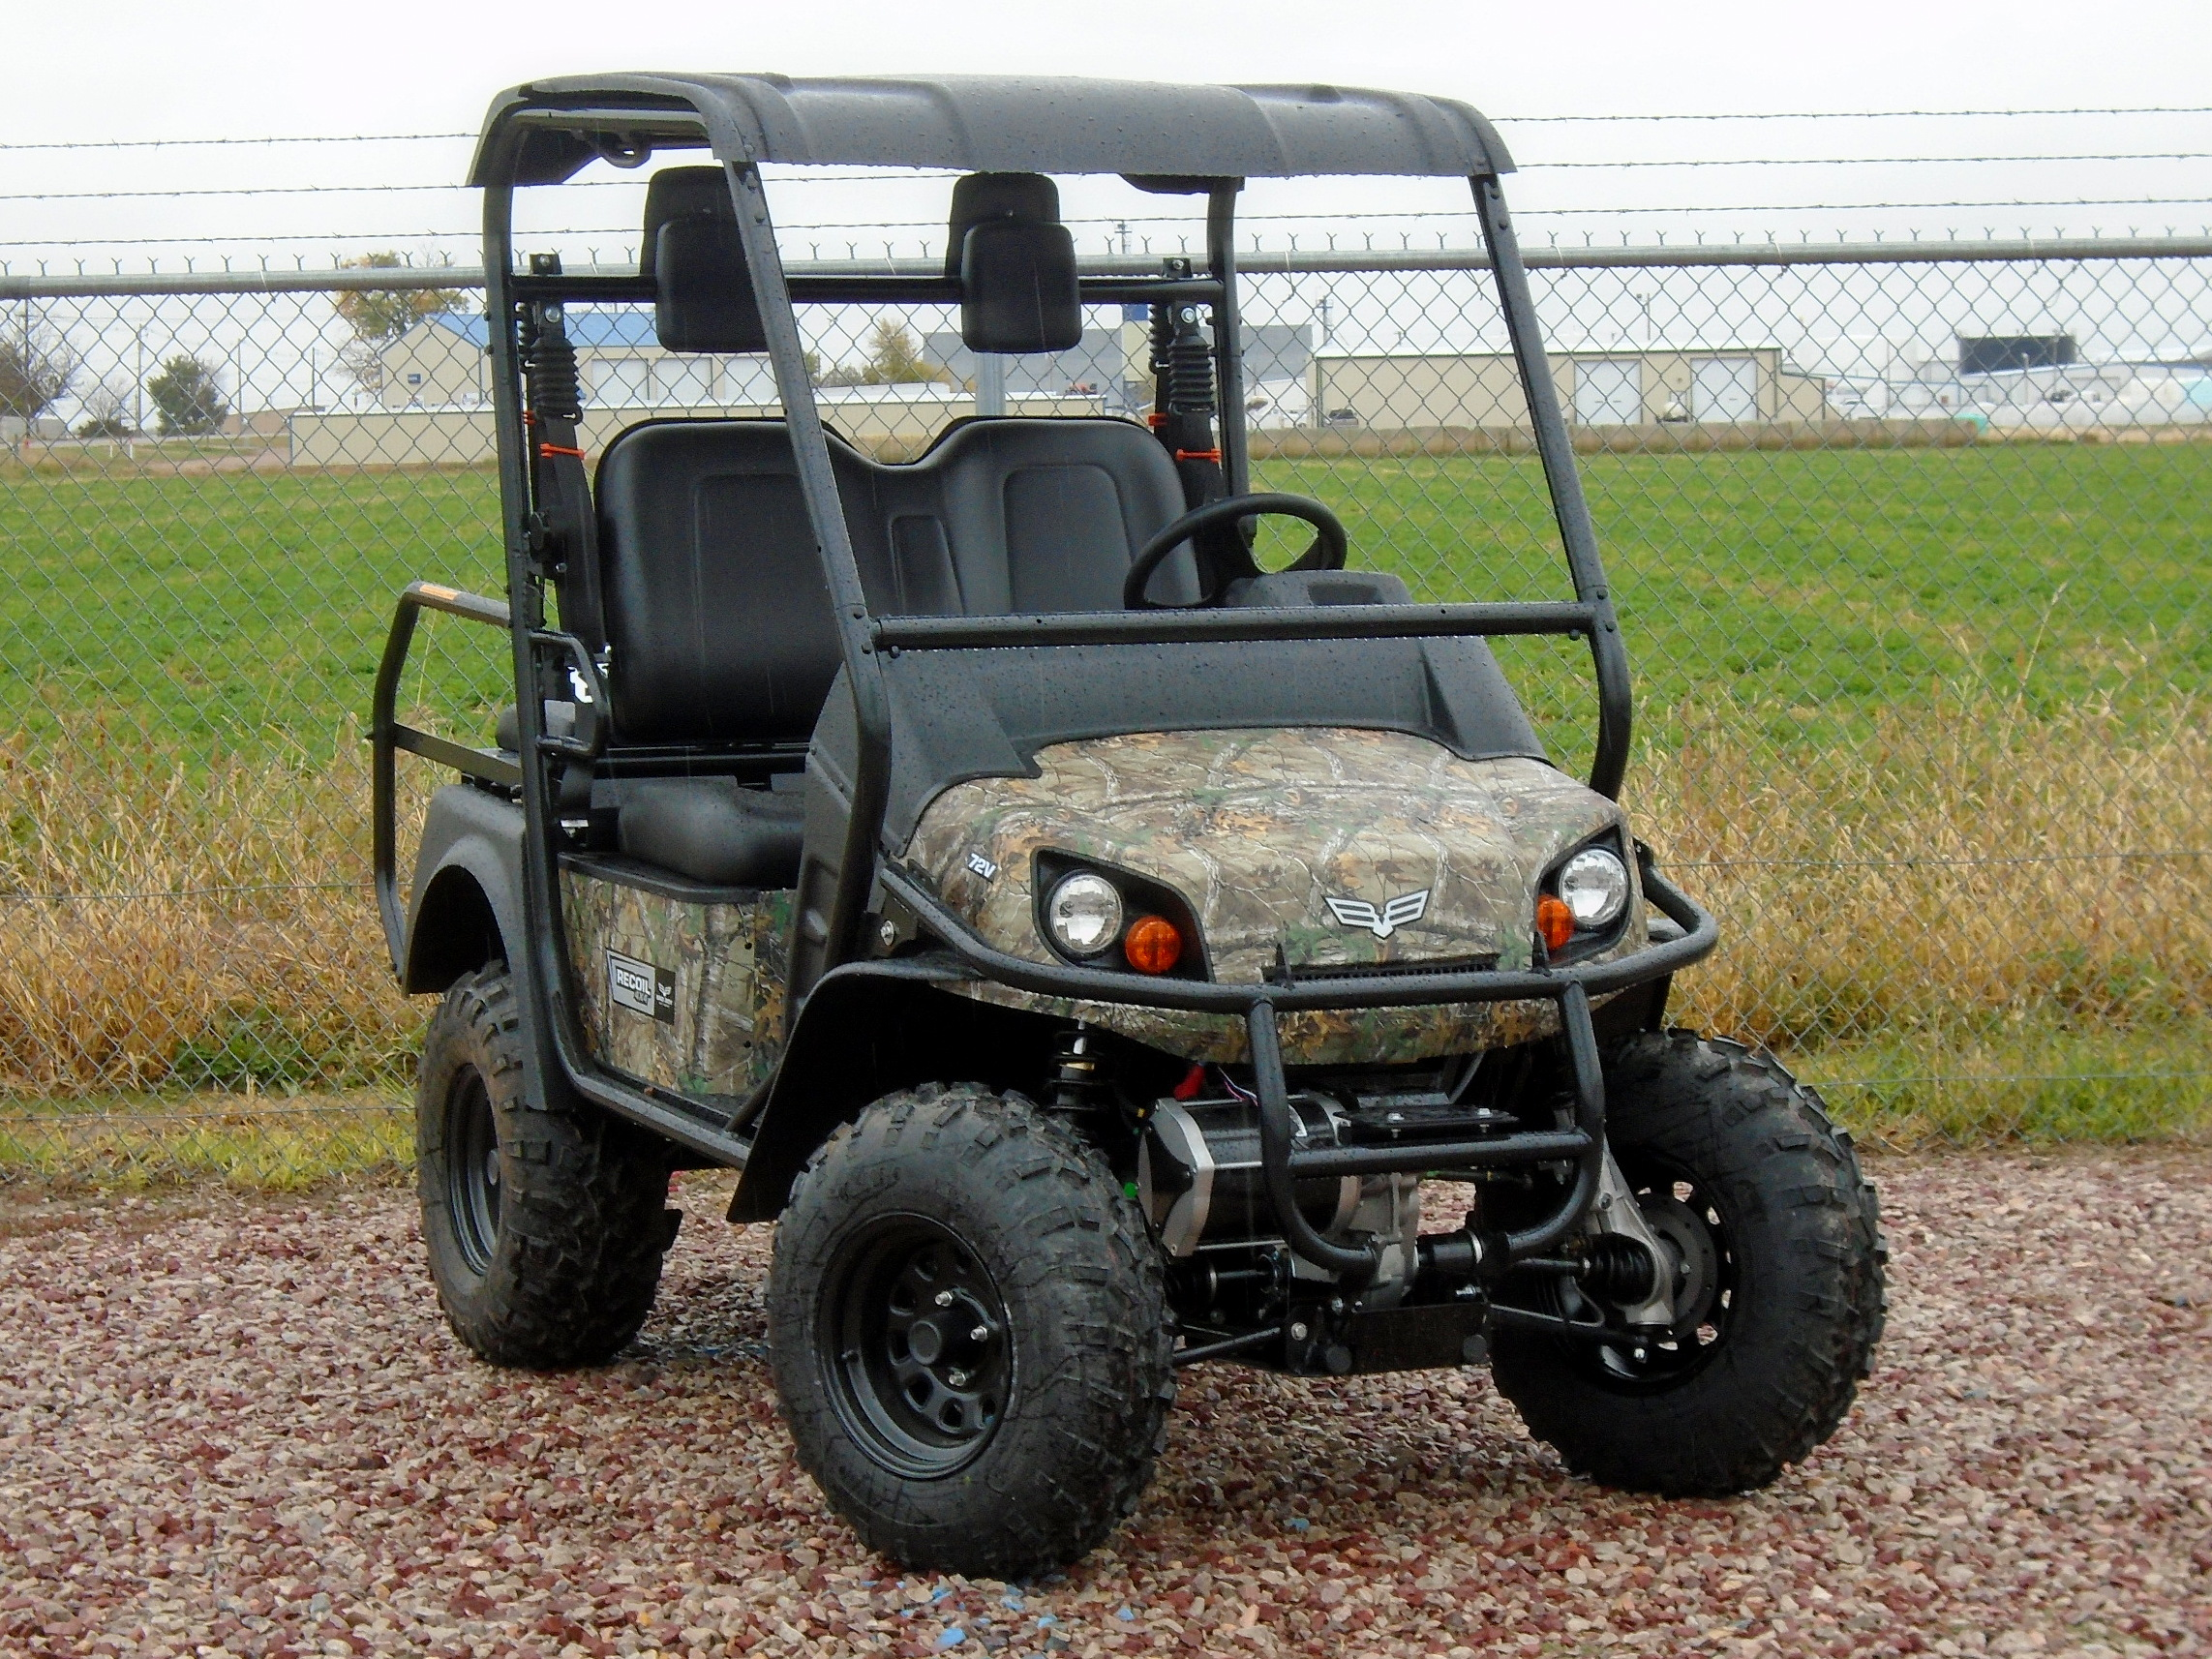 Bad Boy Buggies Recoil 2017 Wiring Diagram Trusted Diagrams Utv Electric Buggy For 4 Wheel Drive Ambush